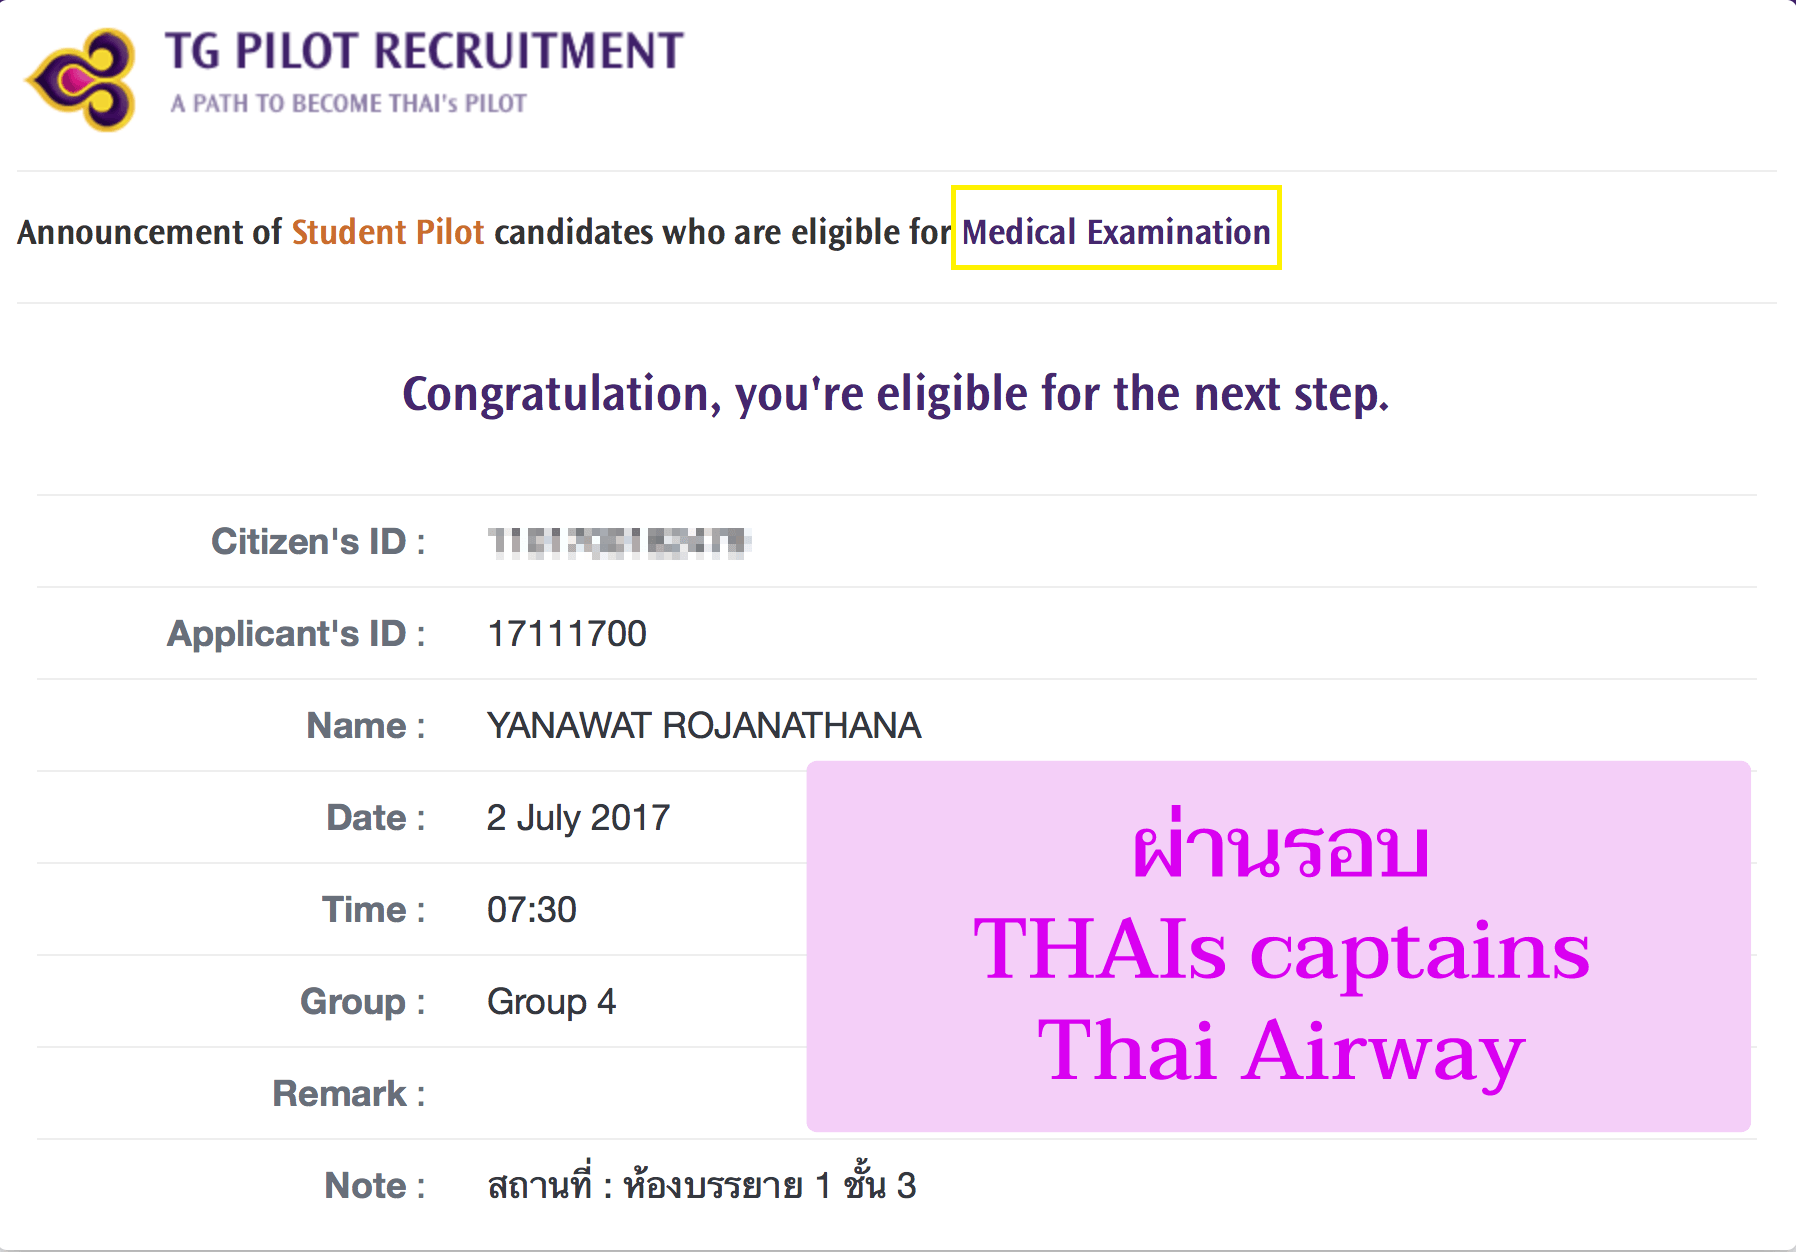 ติวสอบ Student Pilot Thai Airway